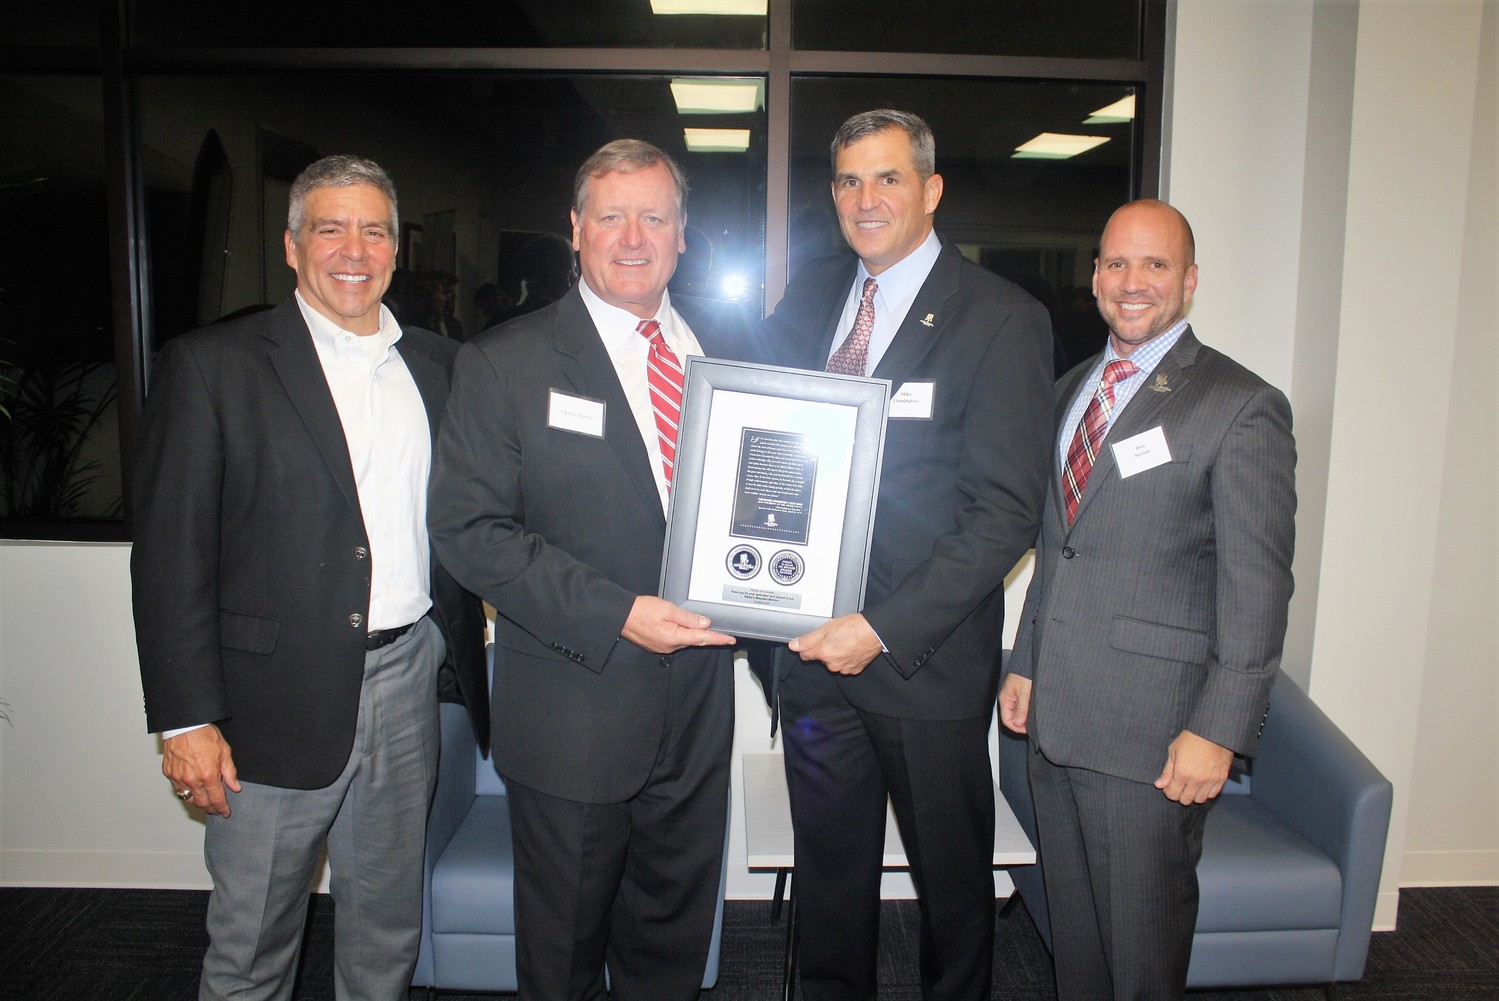 Wounded Warrior Project CEO Mike Linnington (center right) and Staff Sgt. Dan Nevins (right) present Montoya & Associates Principal Owner and Founder Will Montoya and Principal and Senior Advisor Chriss Spires with a commemorative plaque.